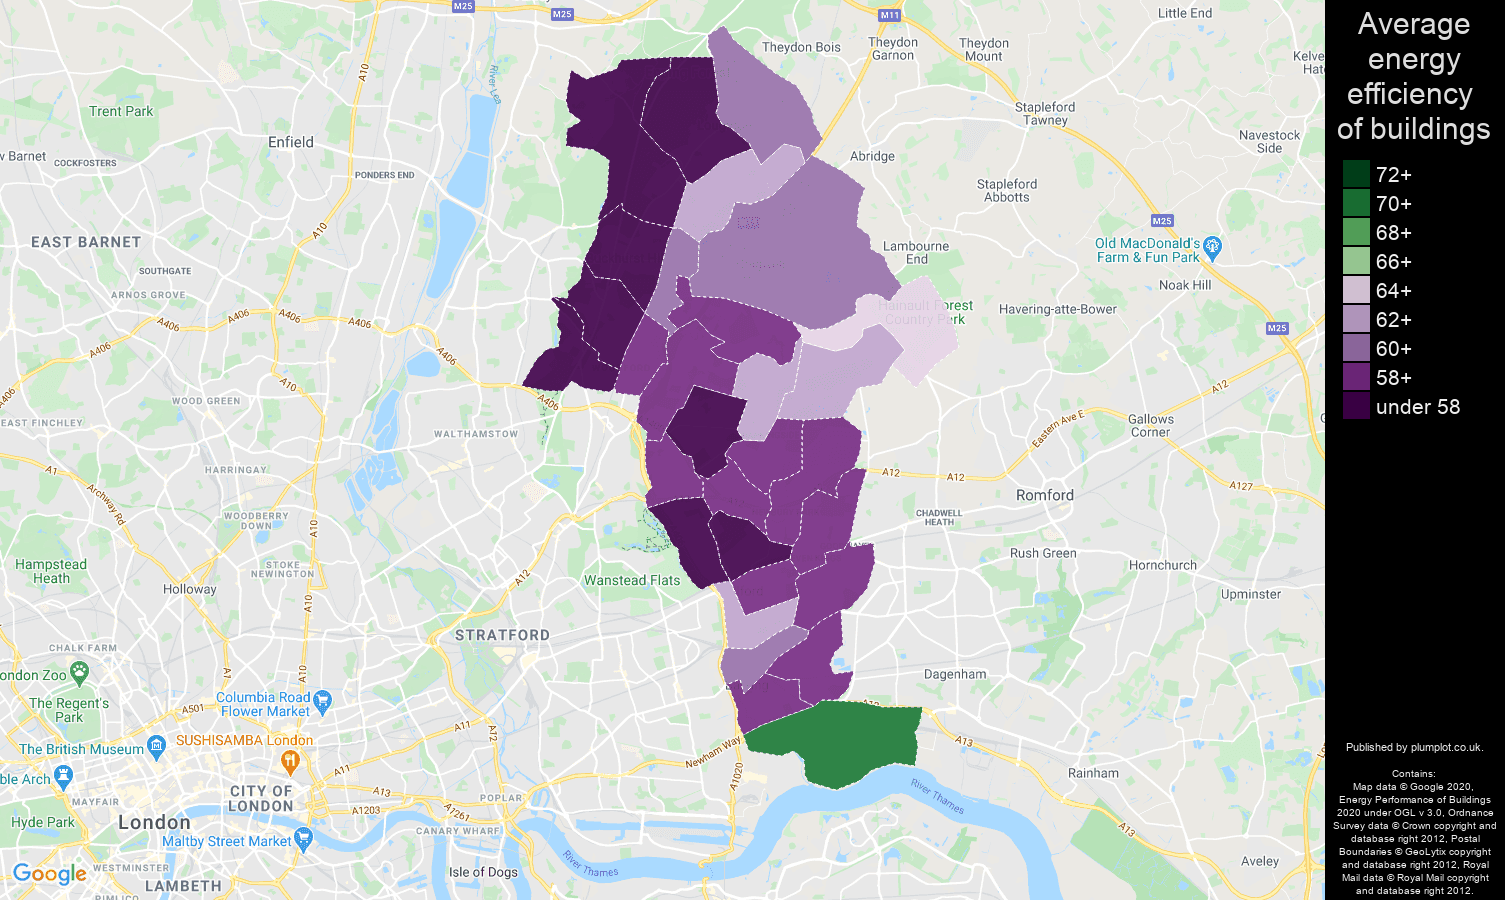 Ilford map of energy efficiency of houses